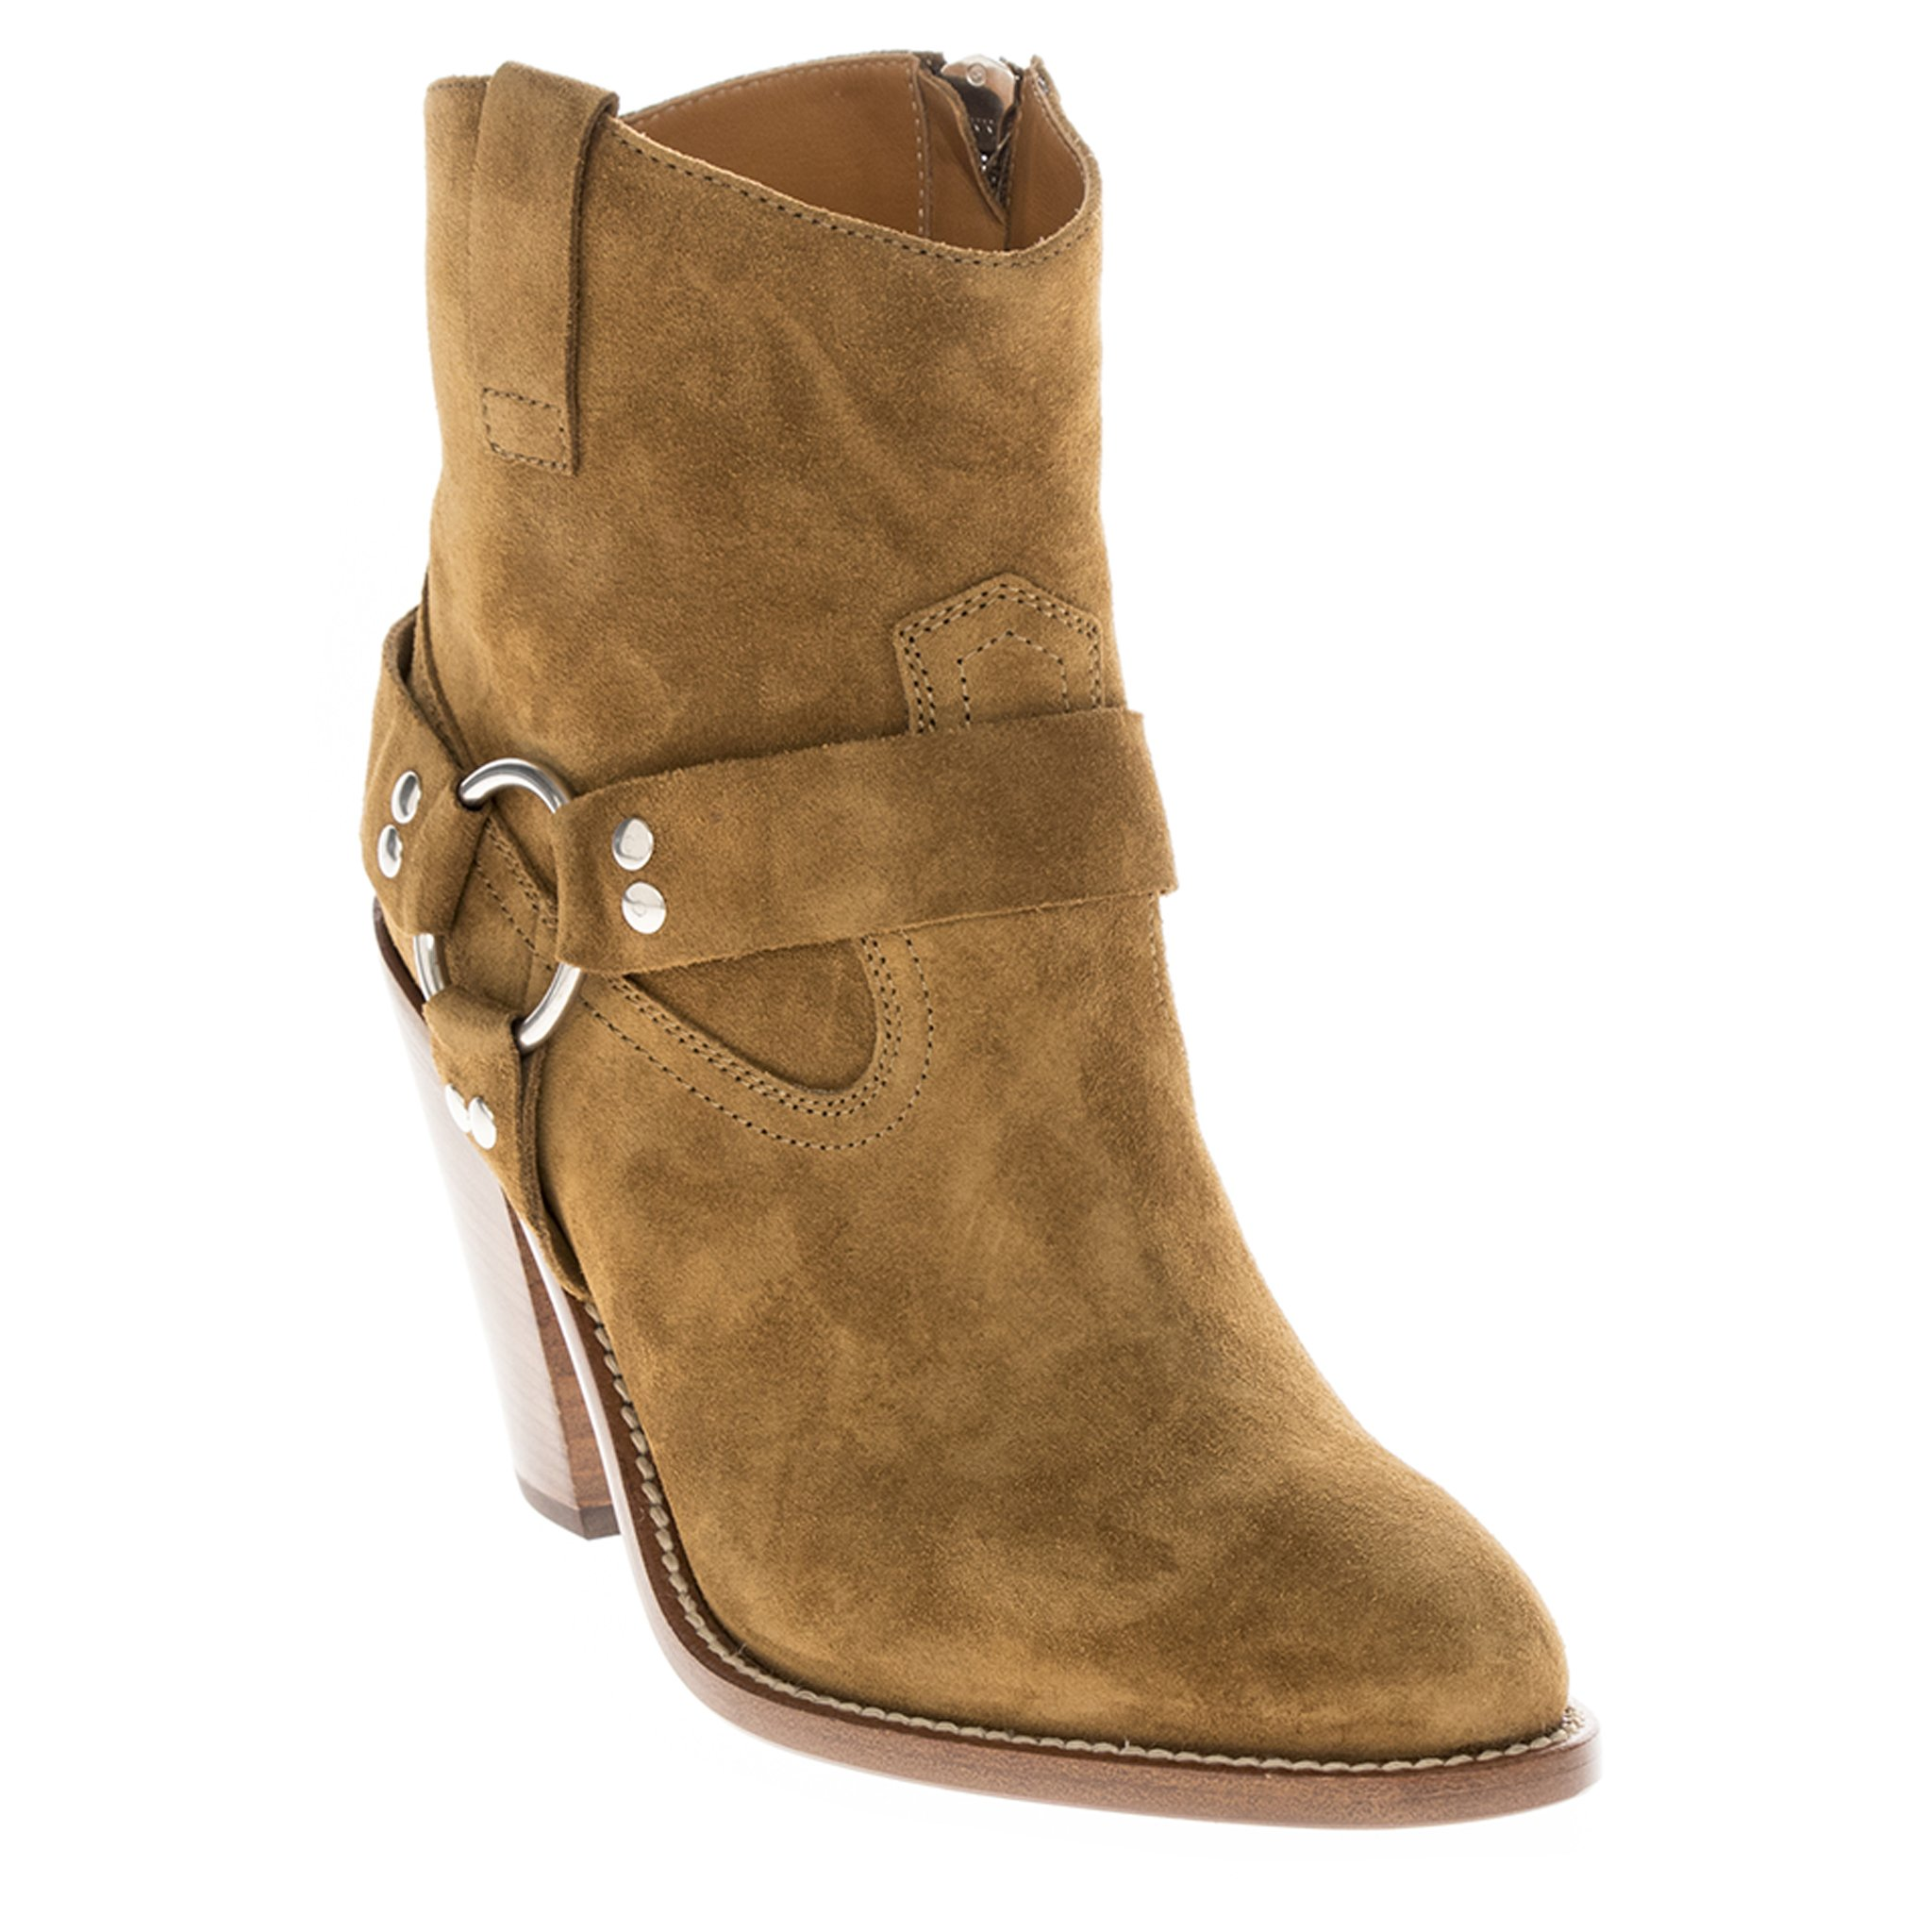 Saint Laurent Women's 'Curtis 80' Harness Western-Style Ankle Boot Suede Tan EU 37 (US 7)